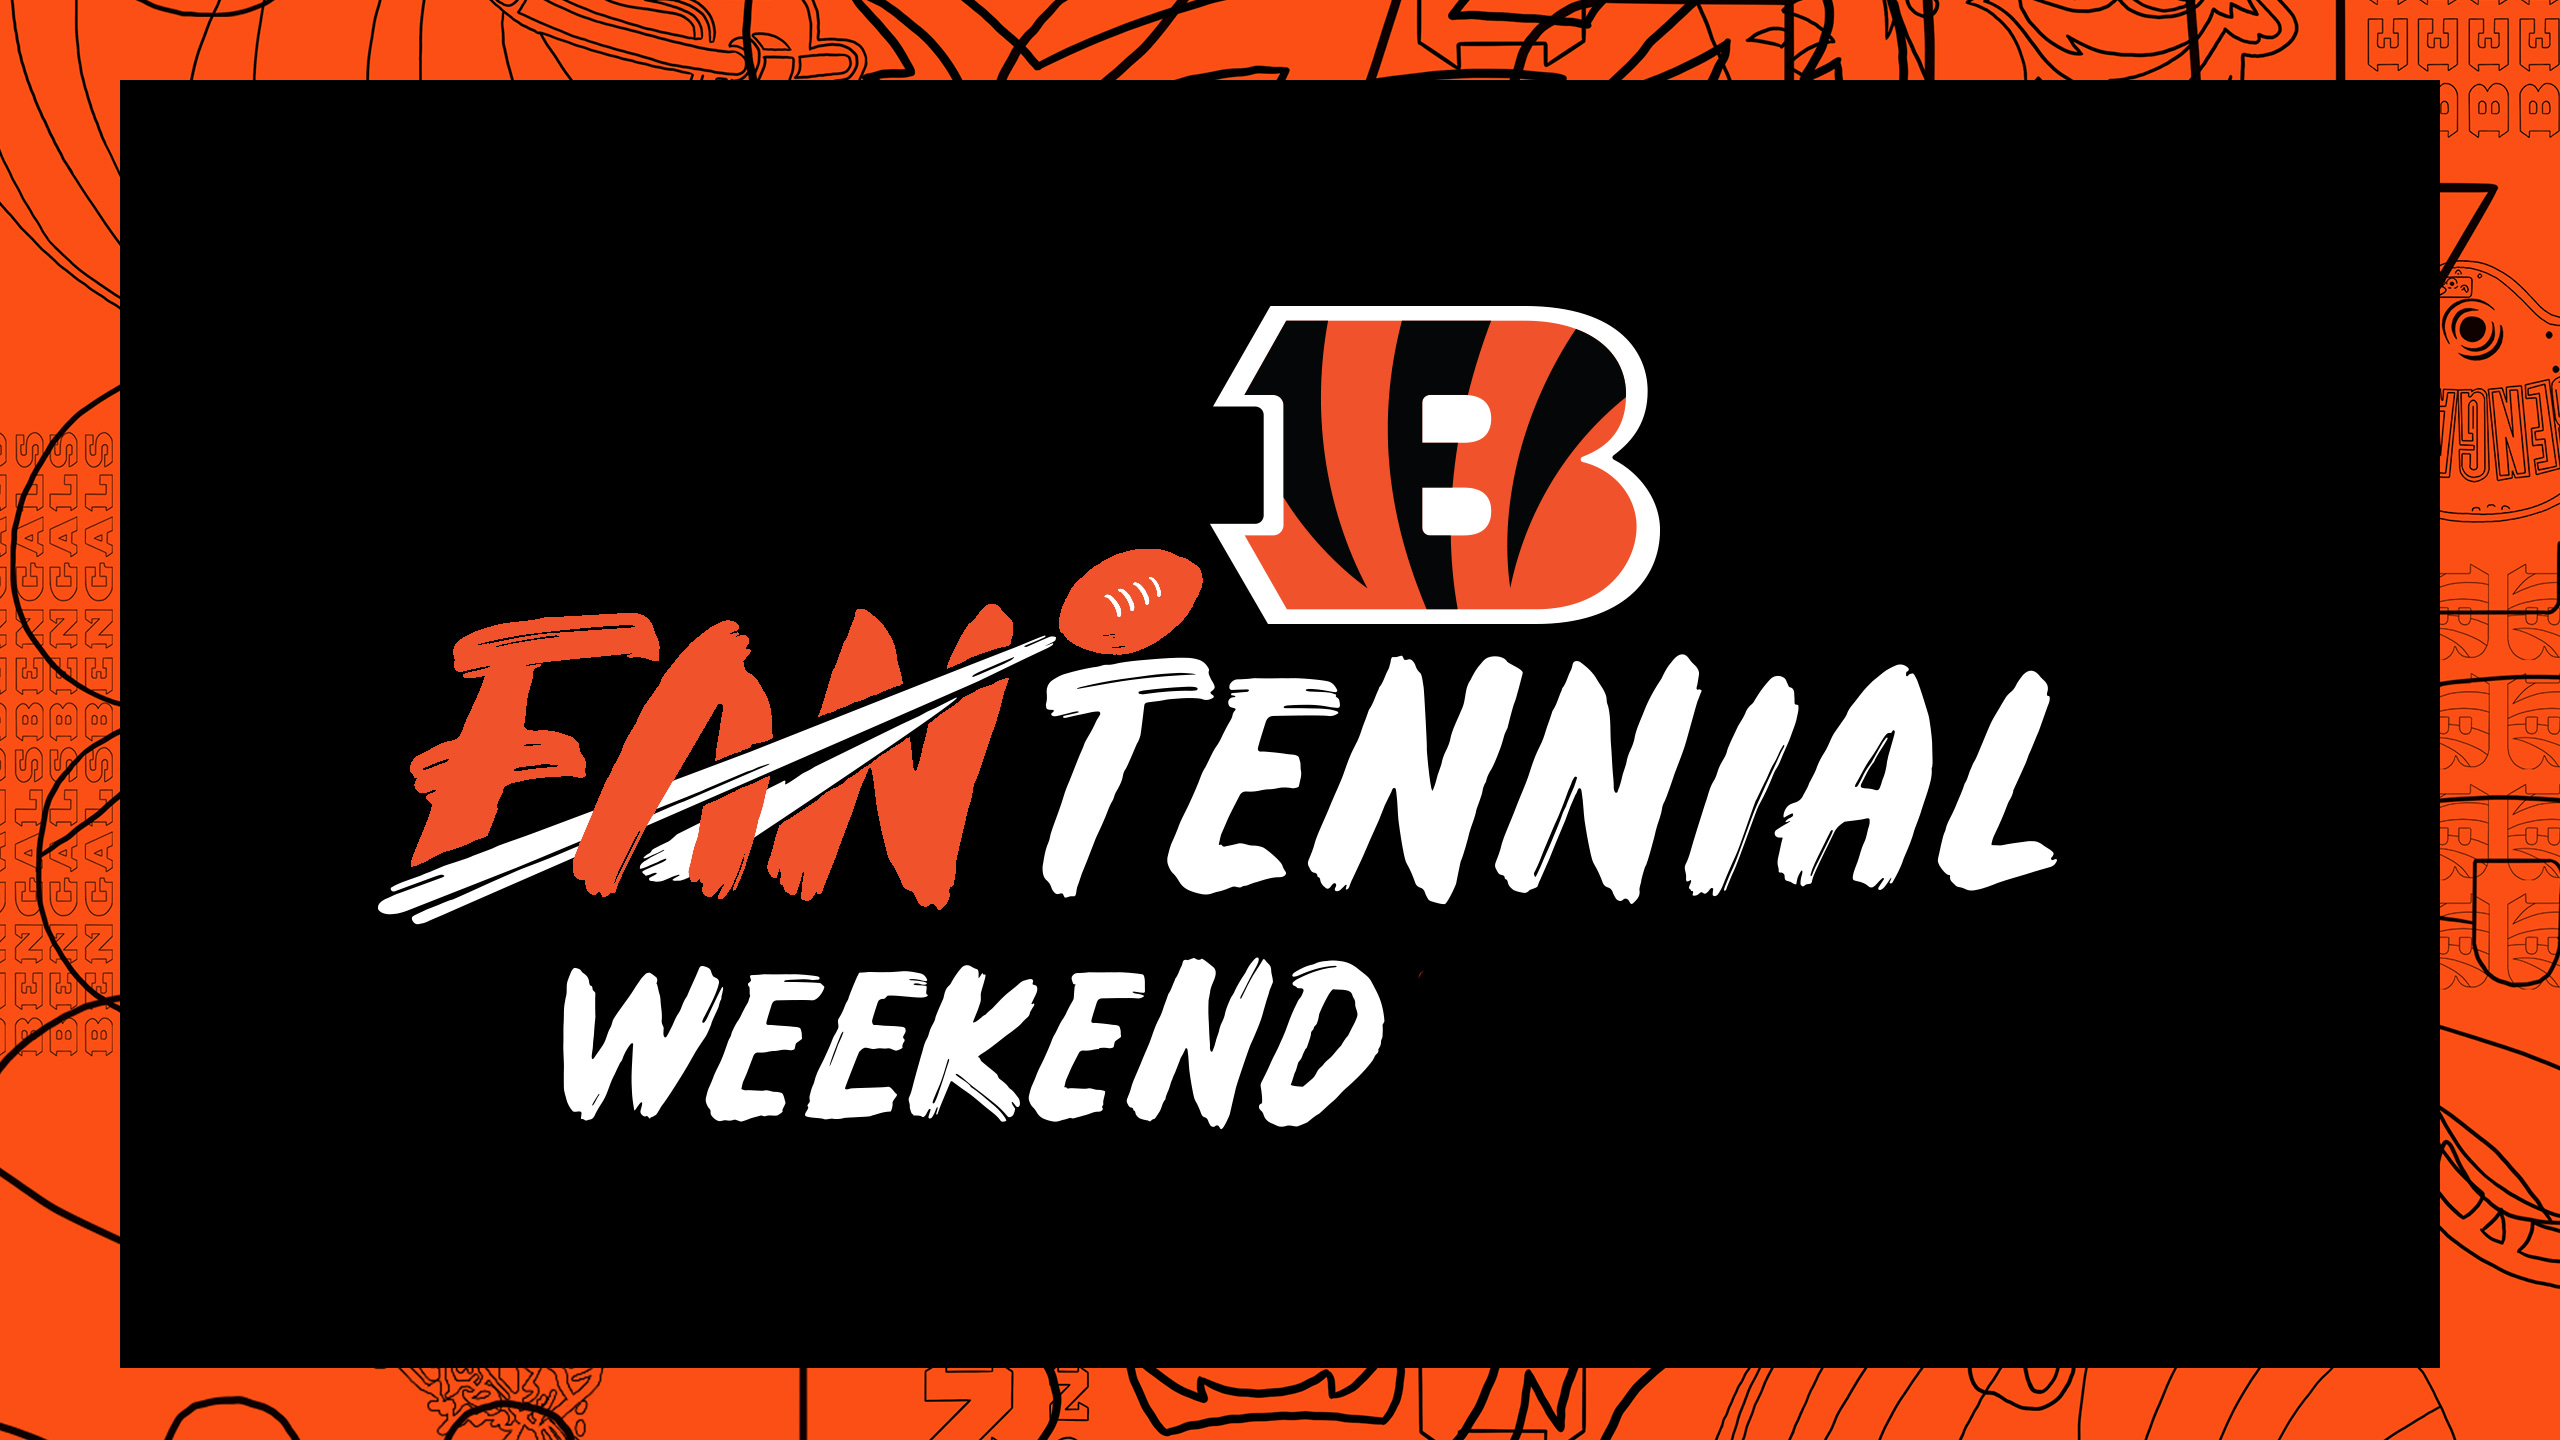 Fantennial Weekend | October 18-20